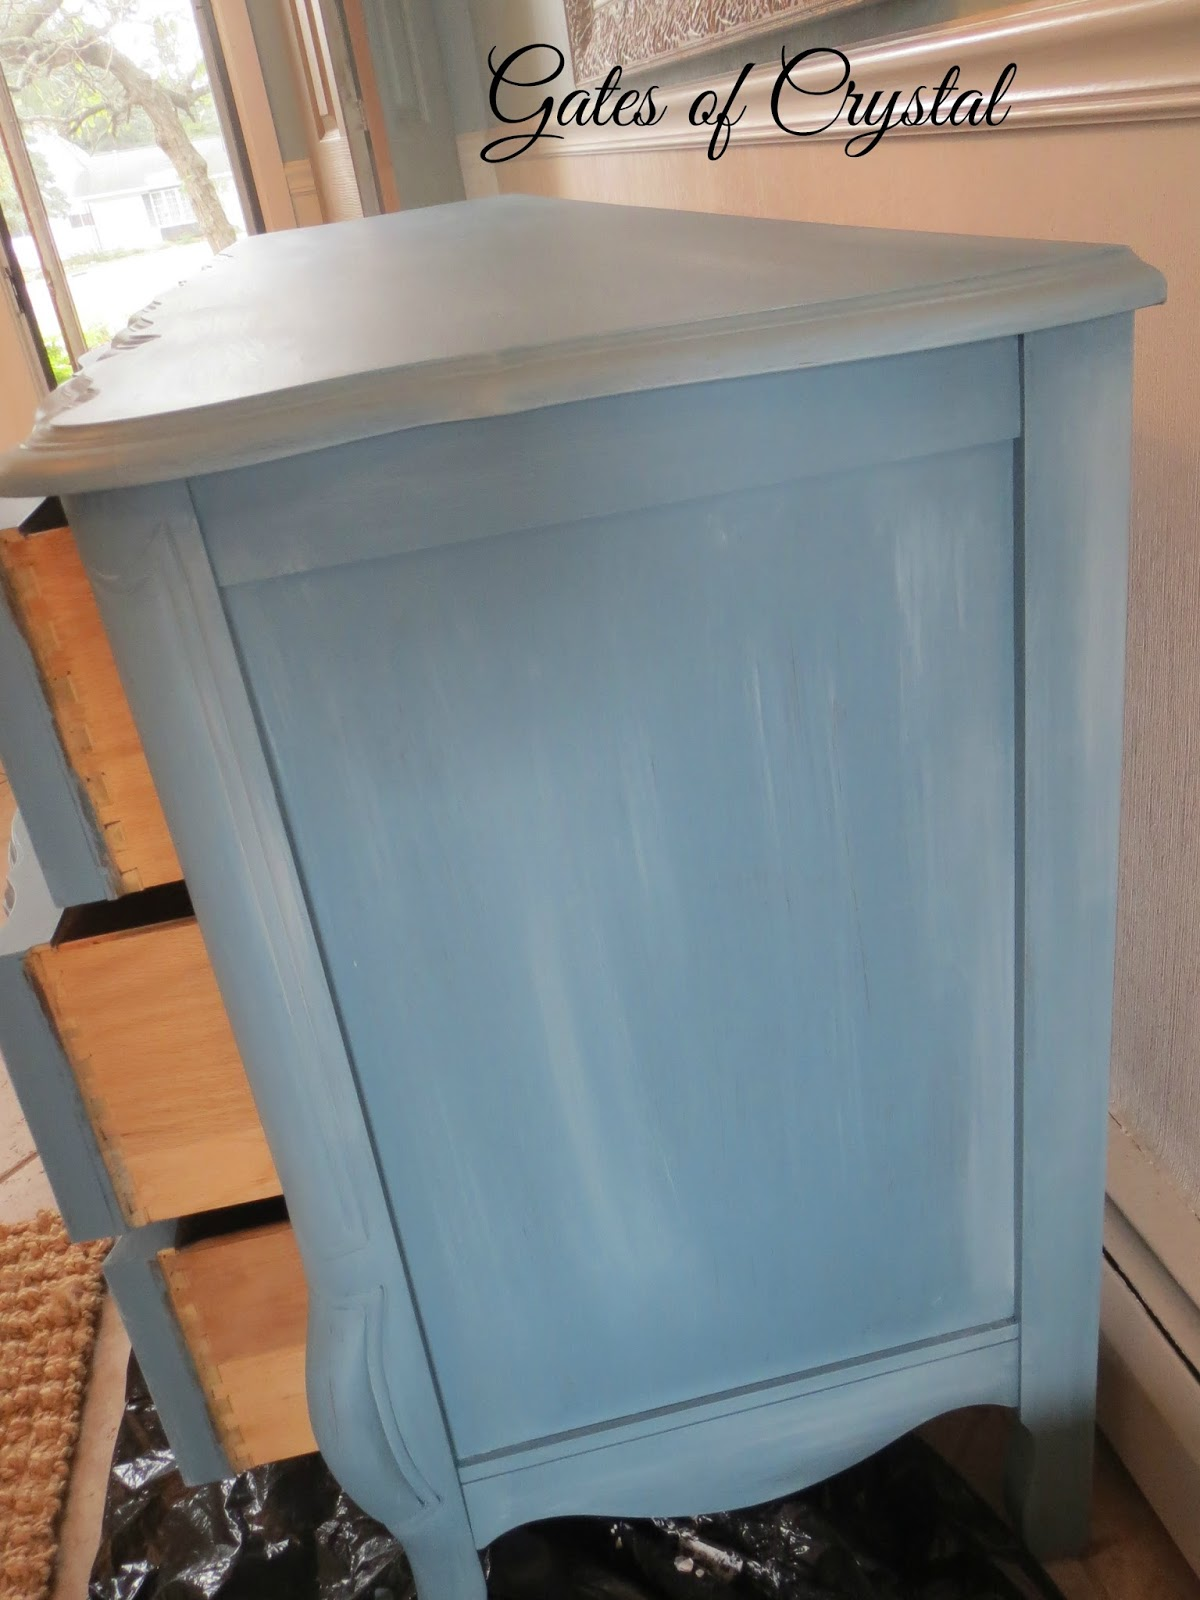 Gates of crystal: painting a french dresser